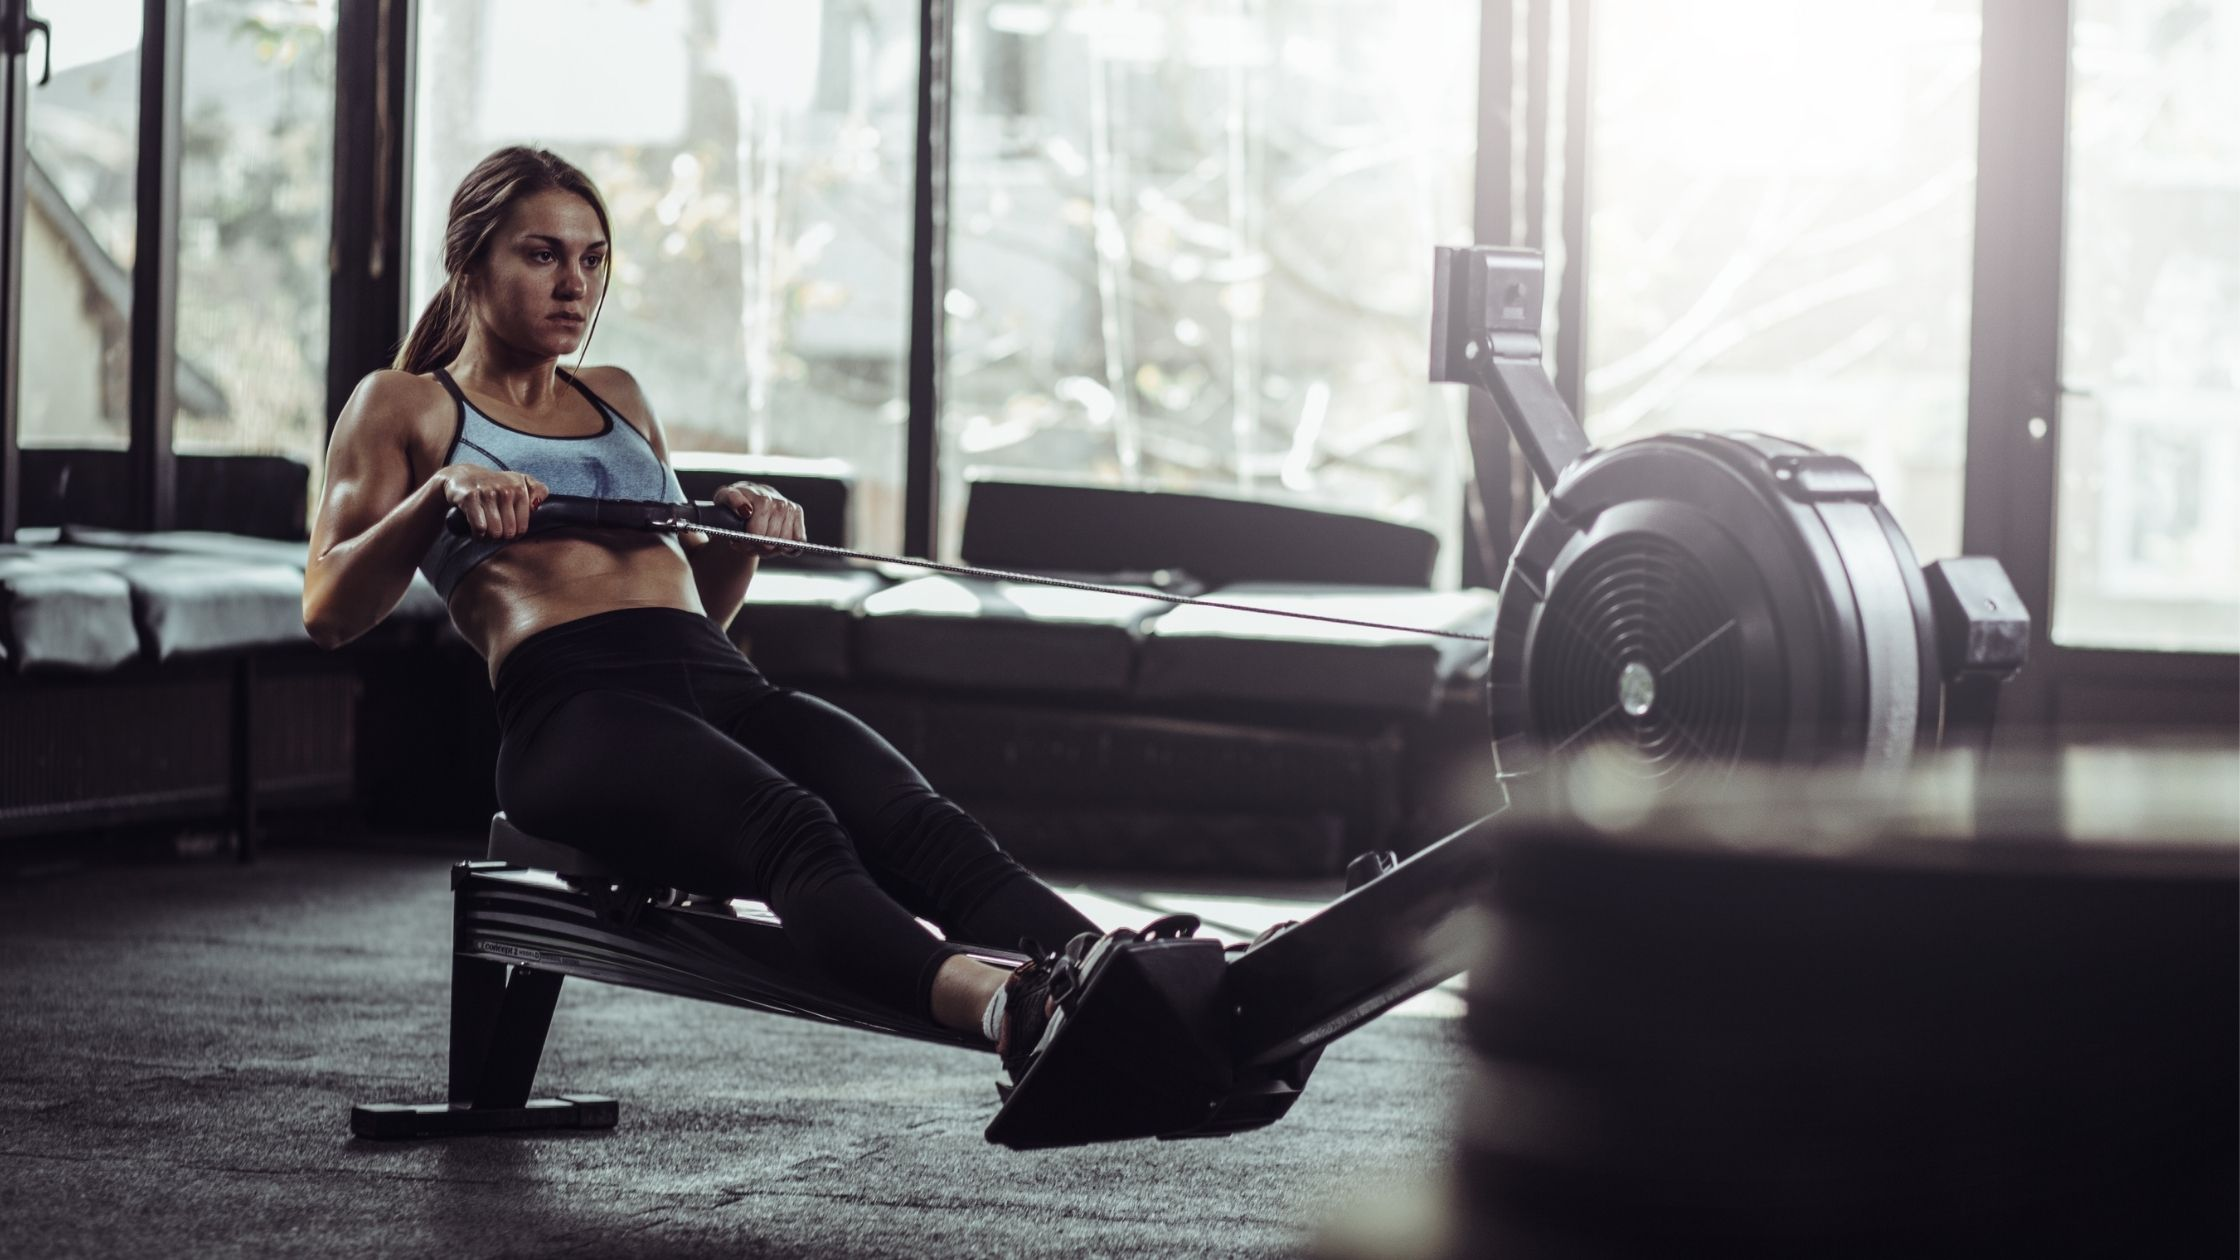 Types of Rowing Machines: